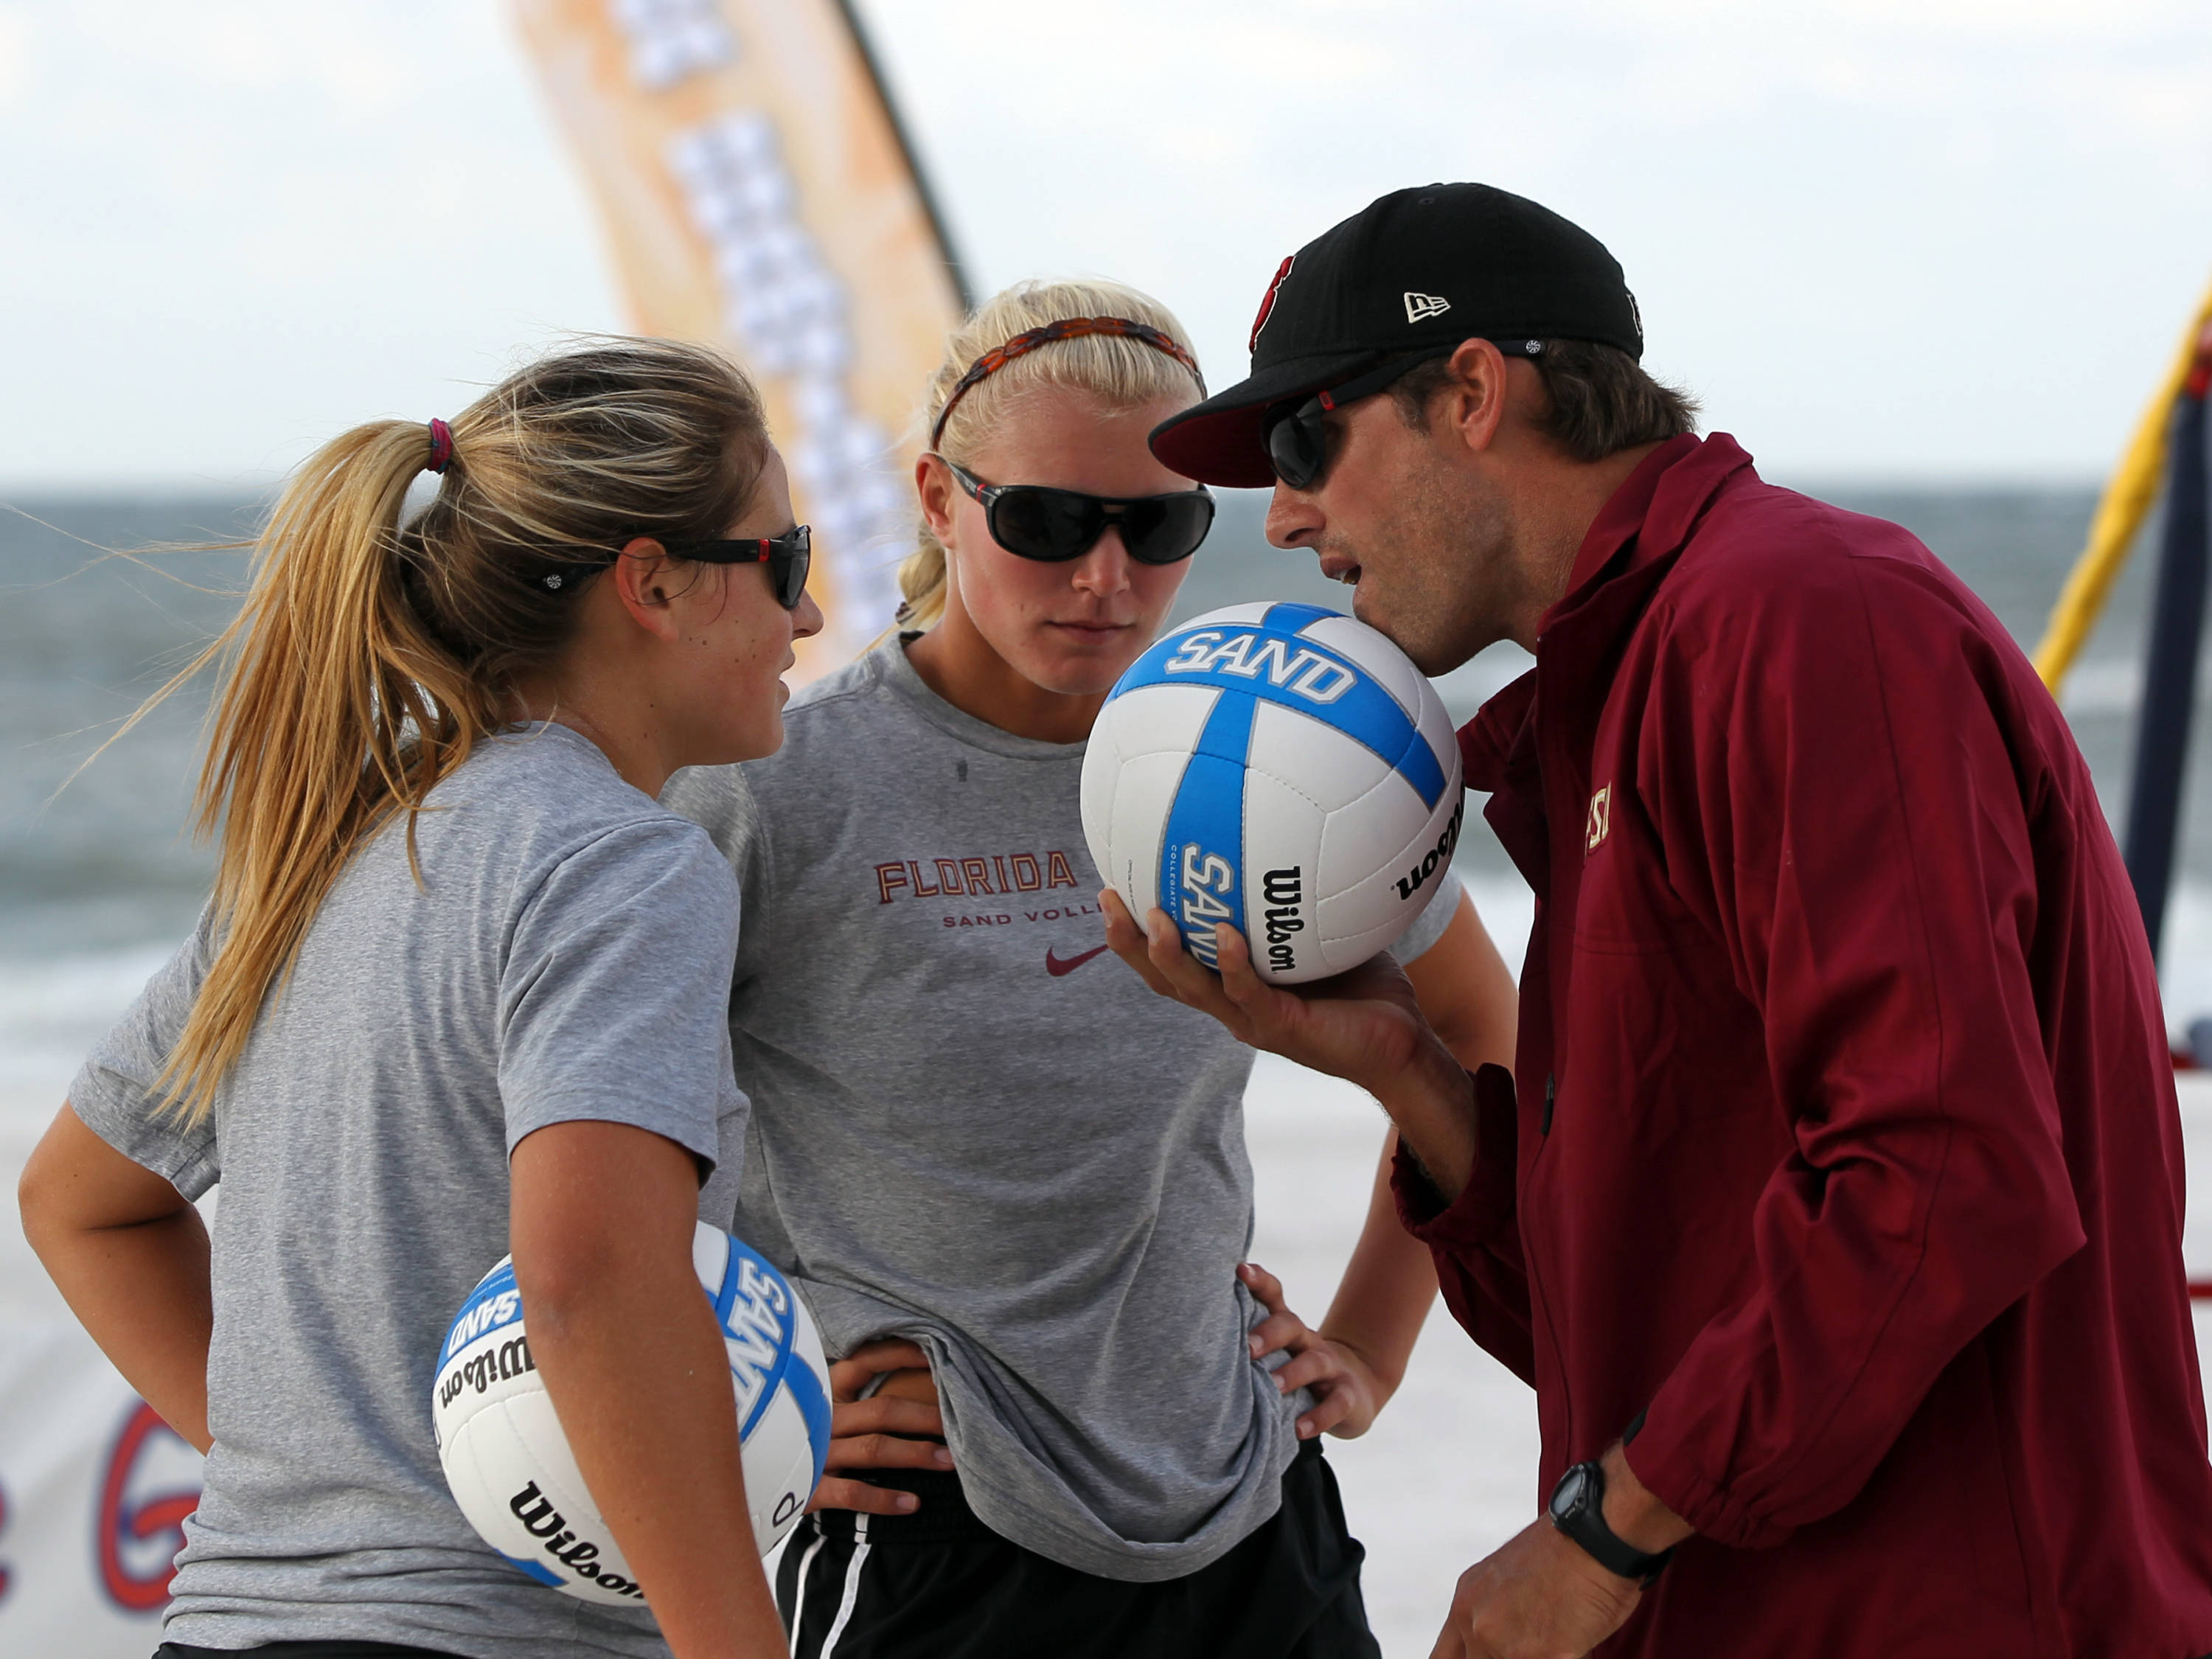 Melanie Pavels, Julie Brown, Assistant Coach Brian Corso, AVCA Collegiate Sand Volleyball National  Championships - Pairs,  Gulf Shores, Alabama, 05/05/13 . (Photo by Steve Musco)